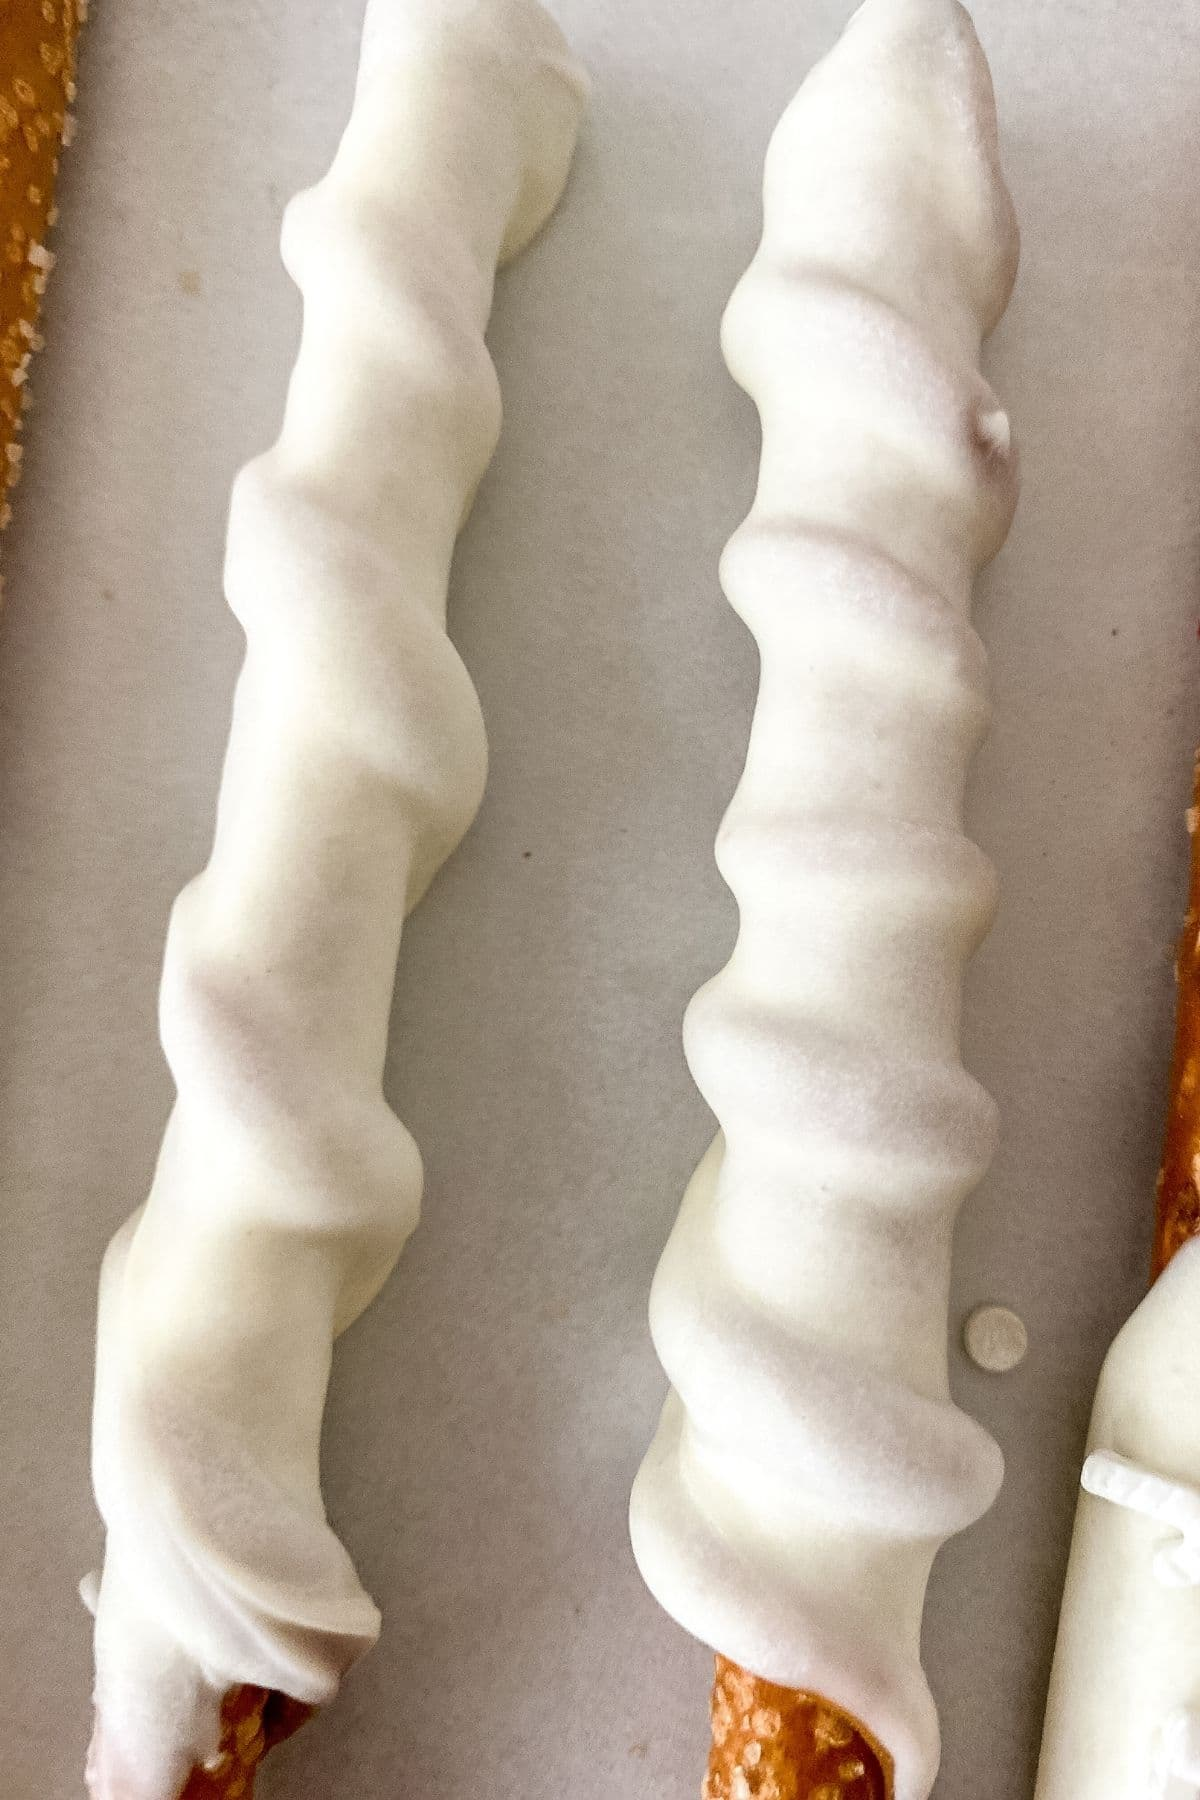 Dipped pretzels on white surface